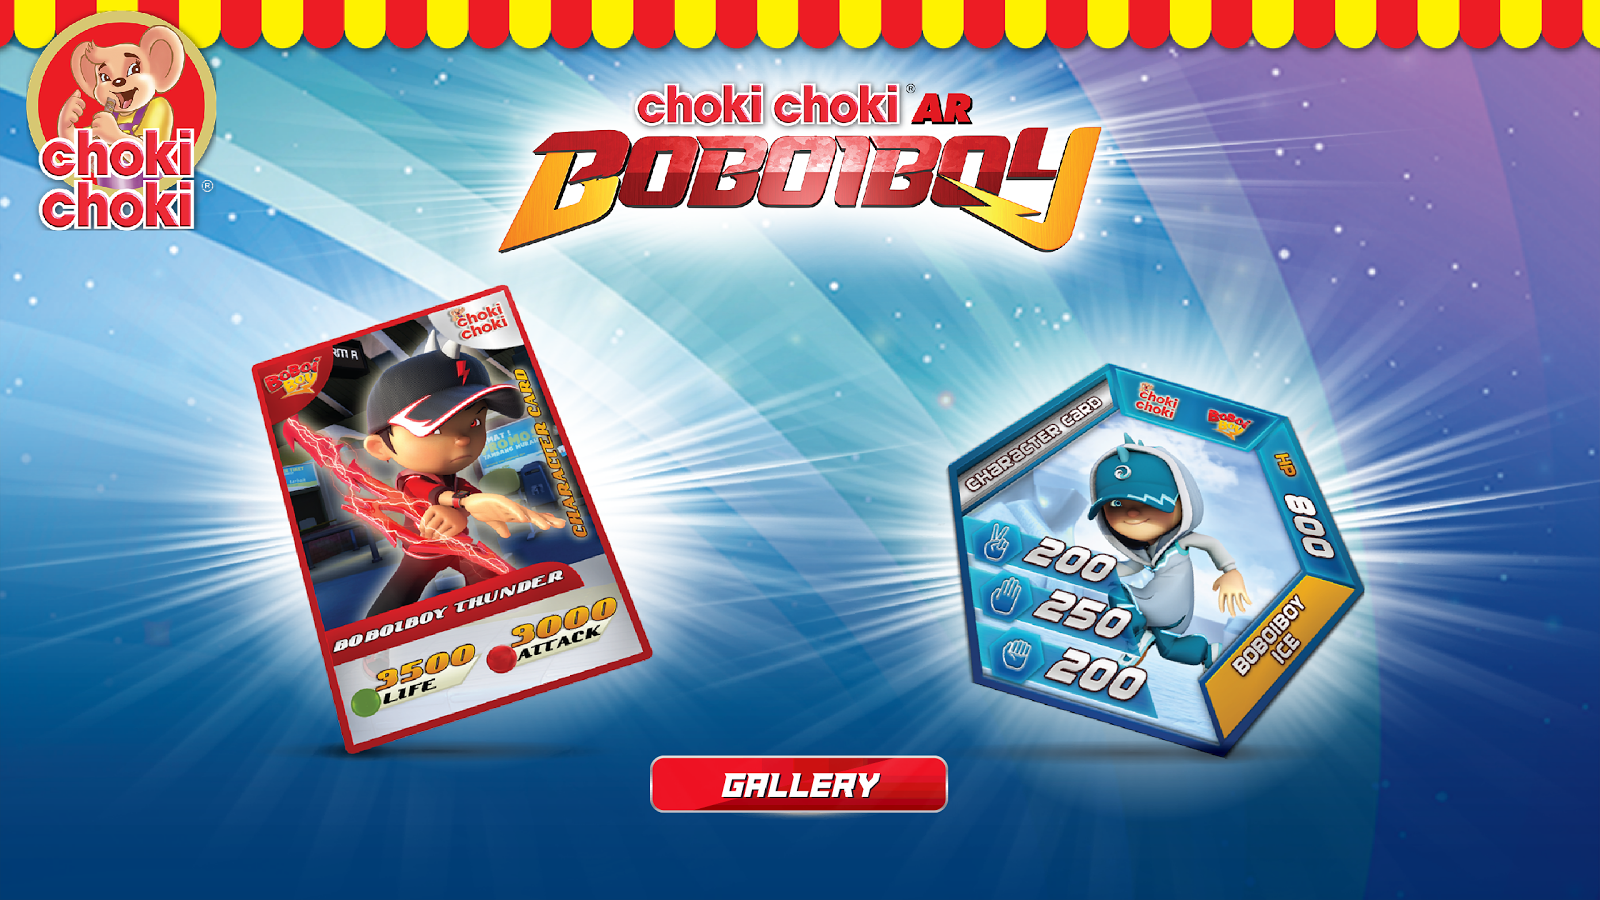 Choki Choki Ar Boboiboy 190 Apk Obb Data File Download